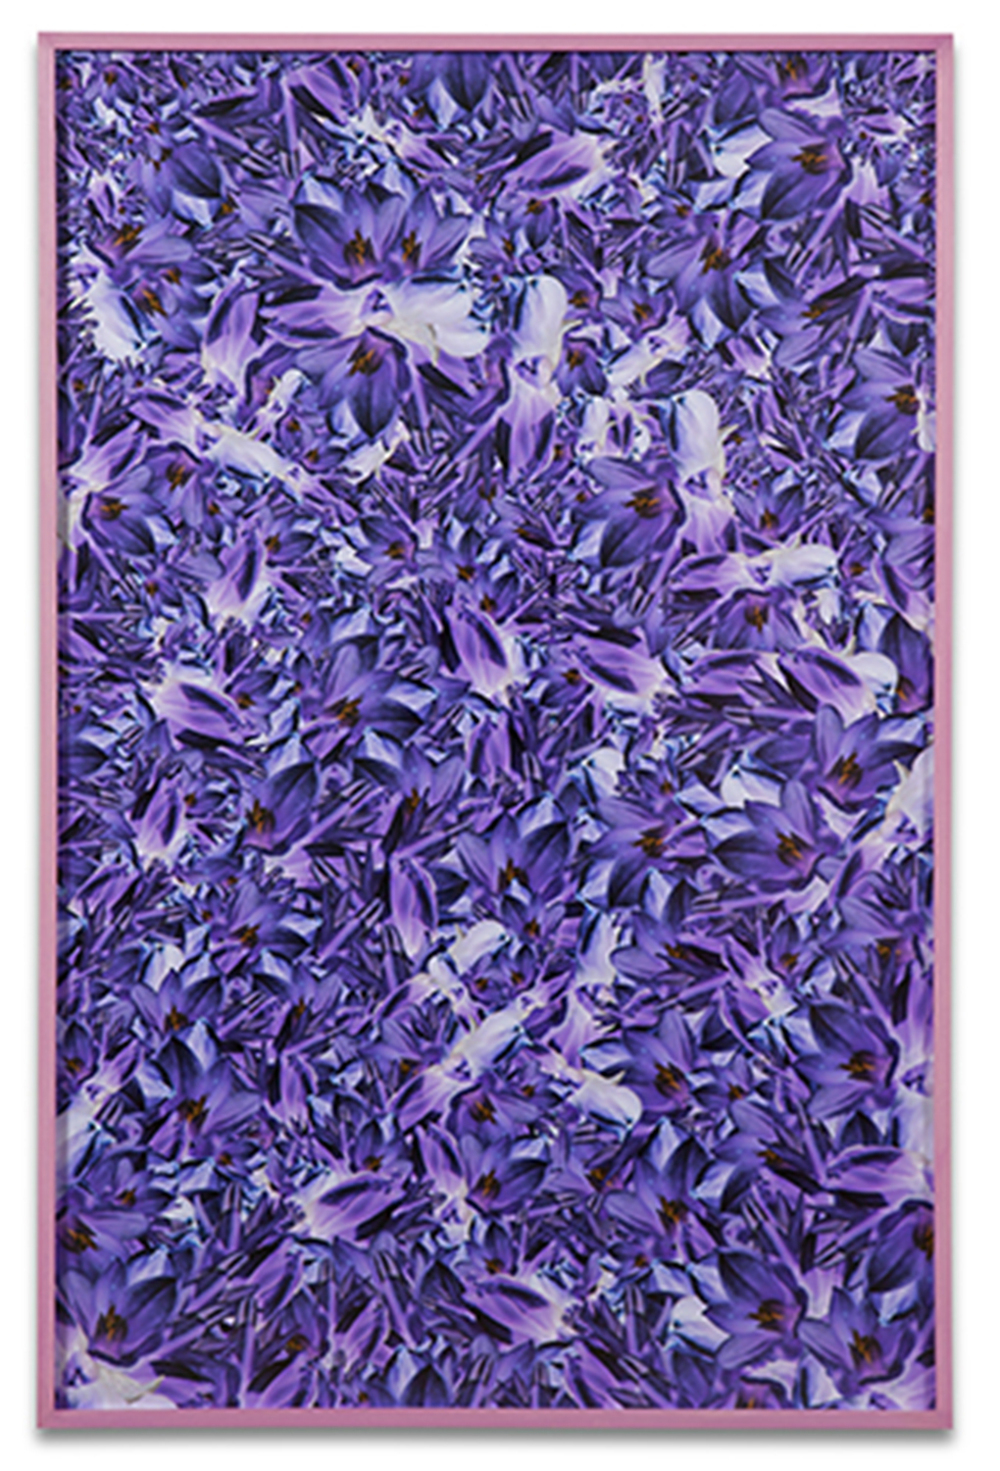 Simmons & Burke, Blue Dicks, 2013, pigment print and custom frame, 65 x 42 inches